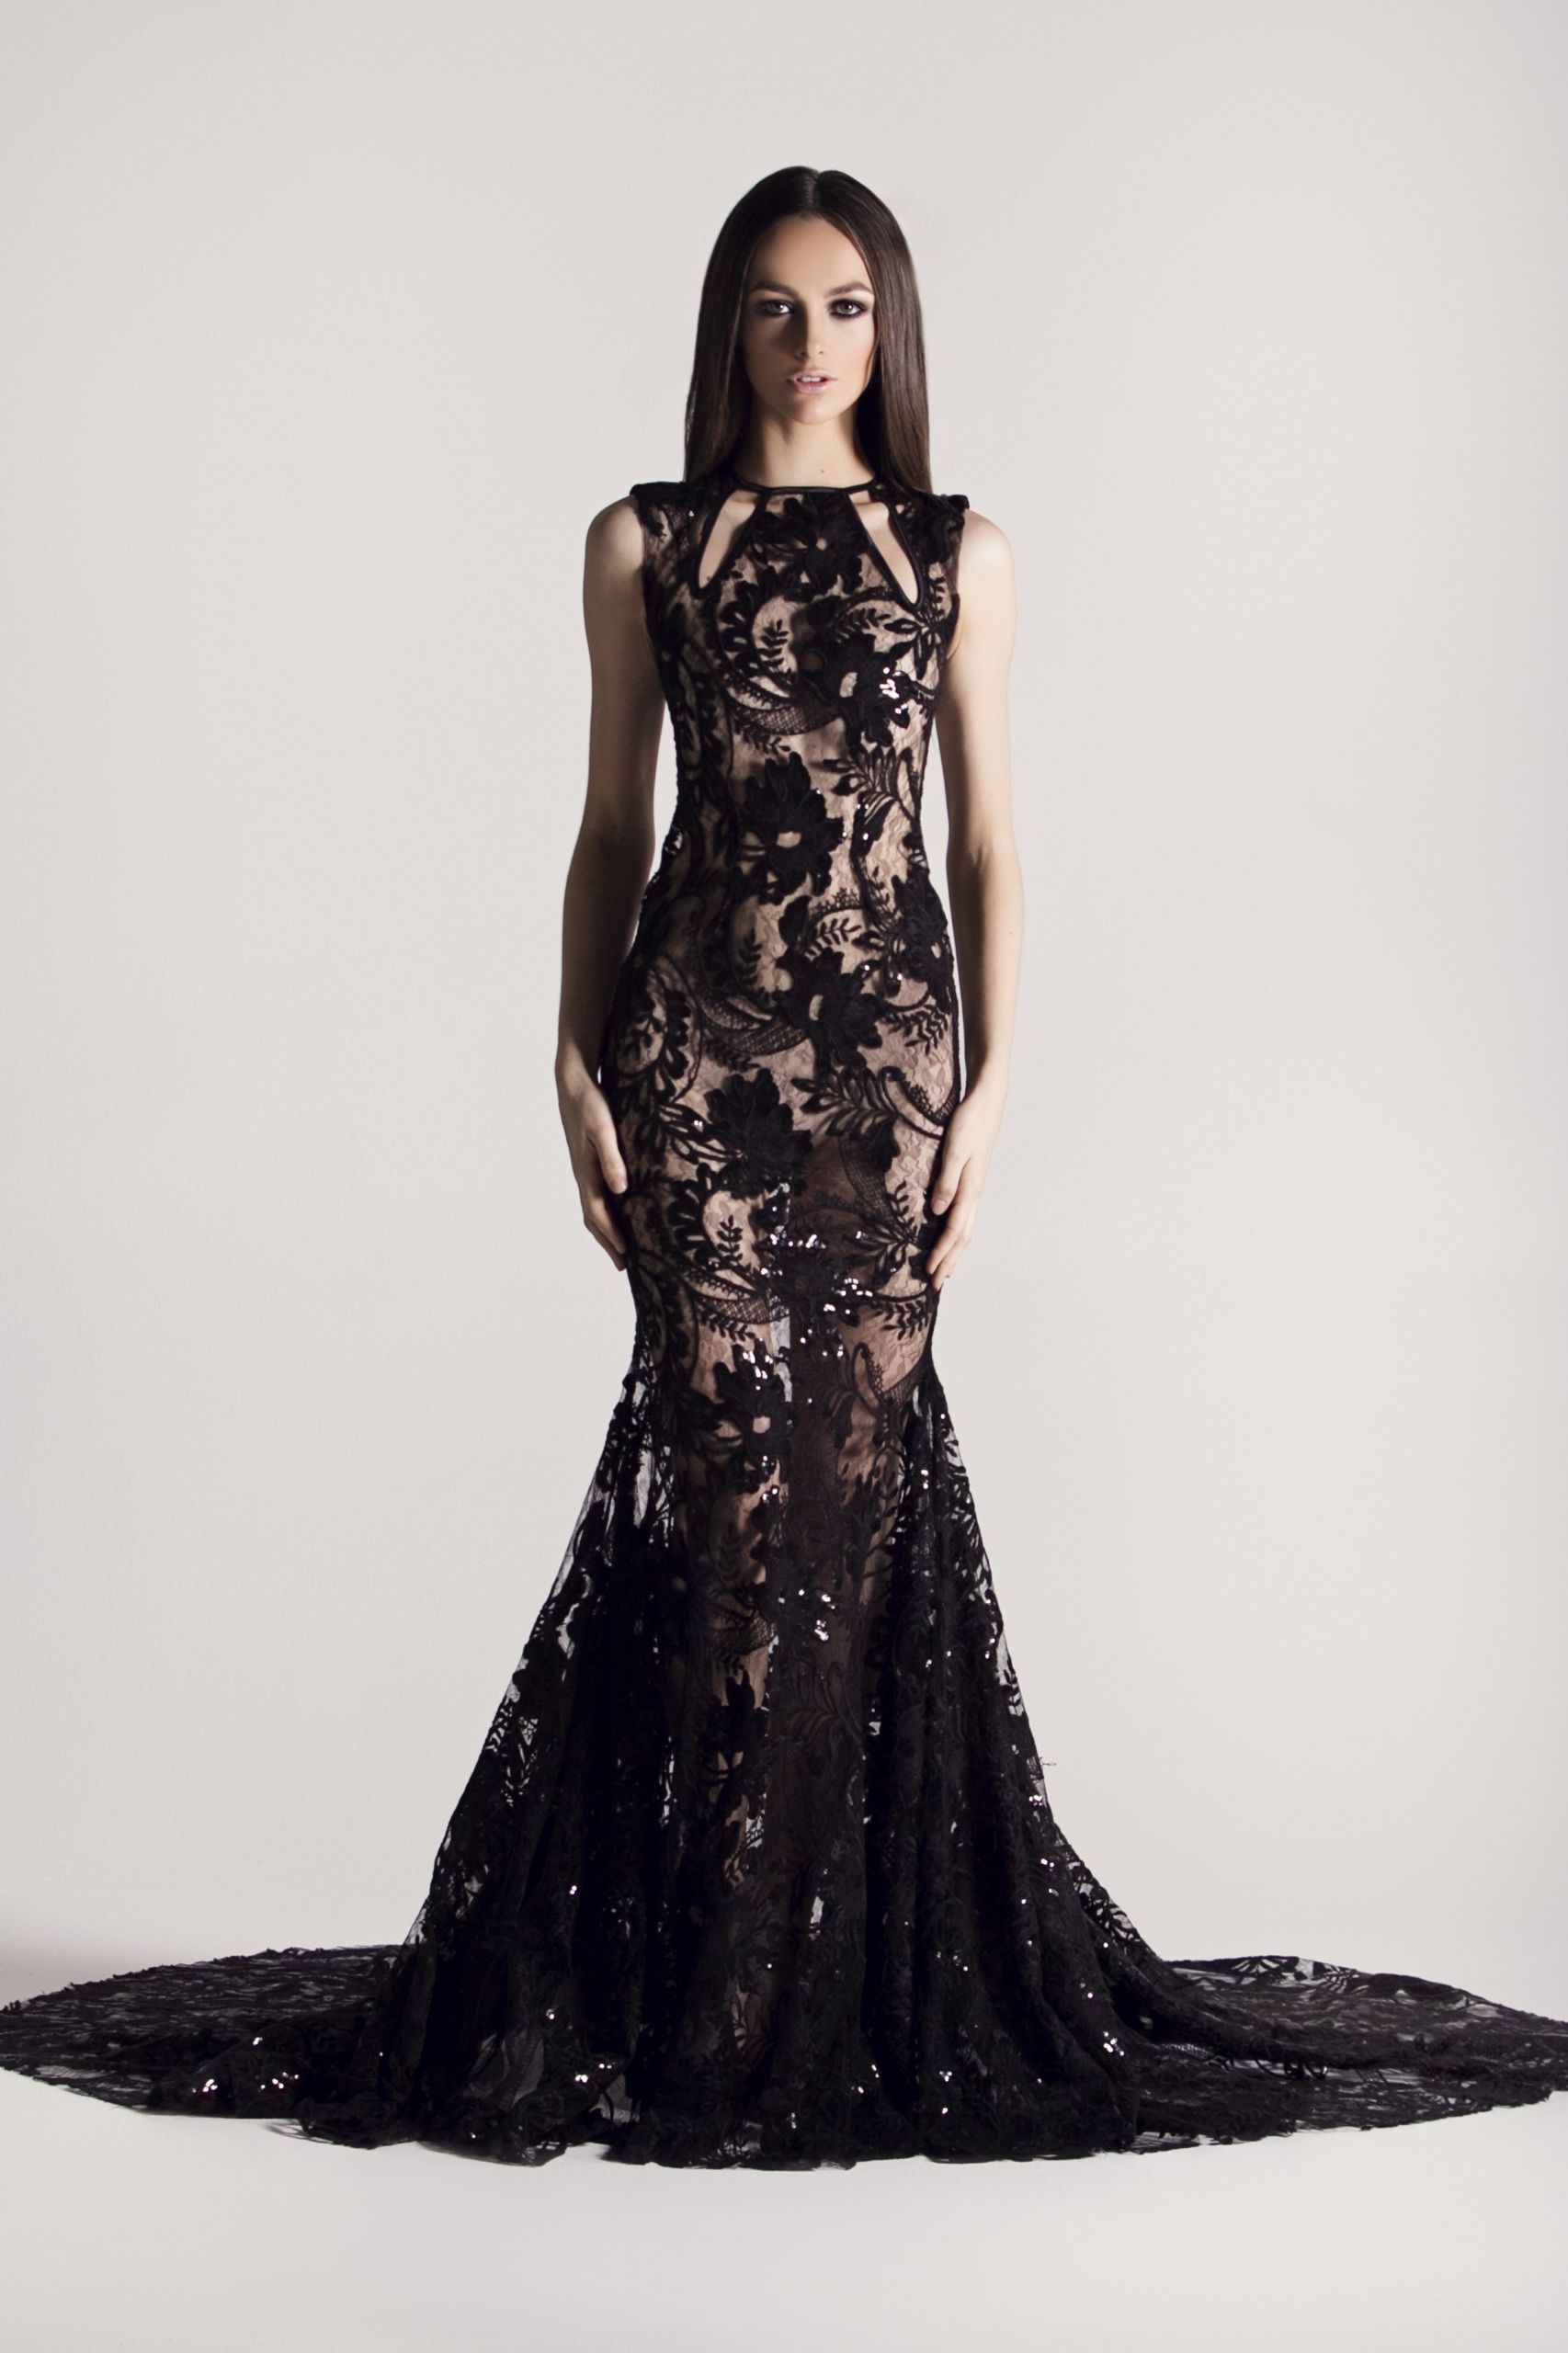 Michael Costello | F - Gowns | Pinterest | Michael costello, Gowns ...